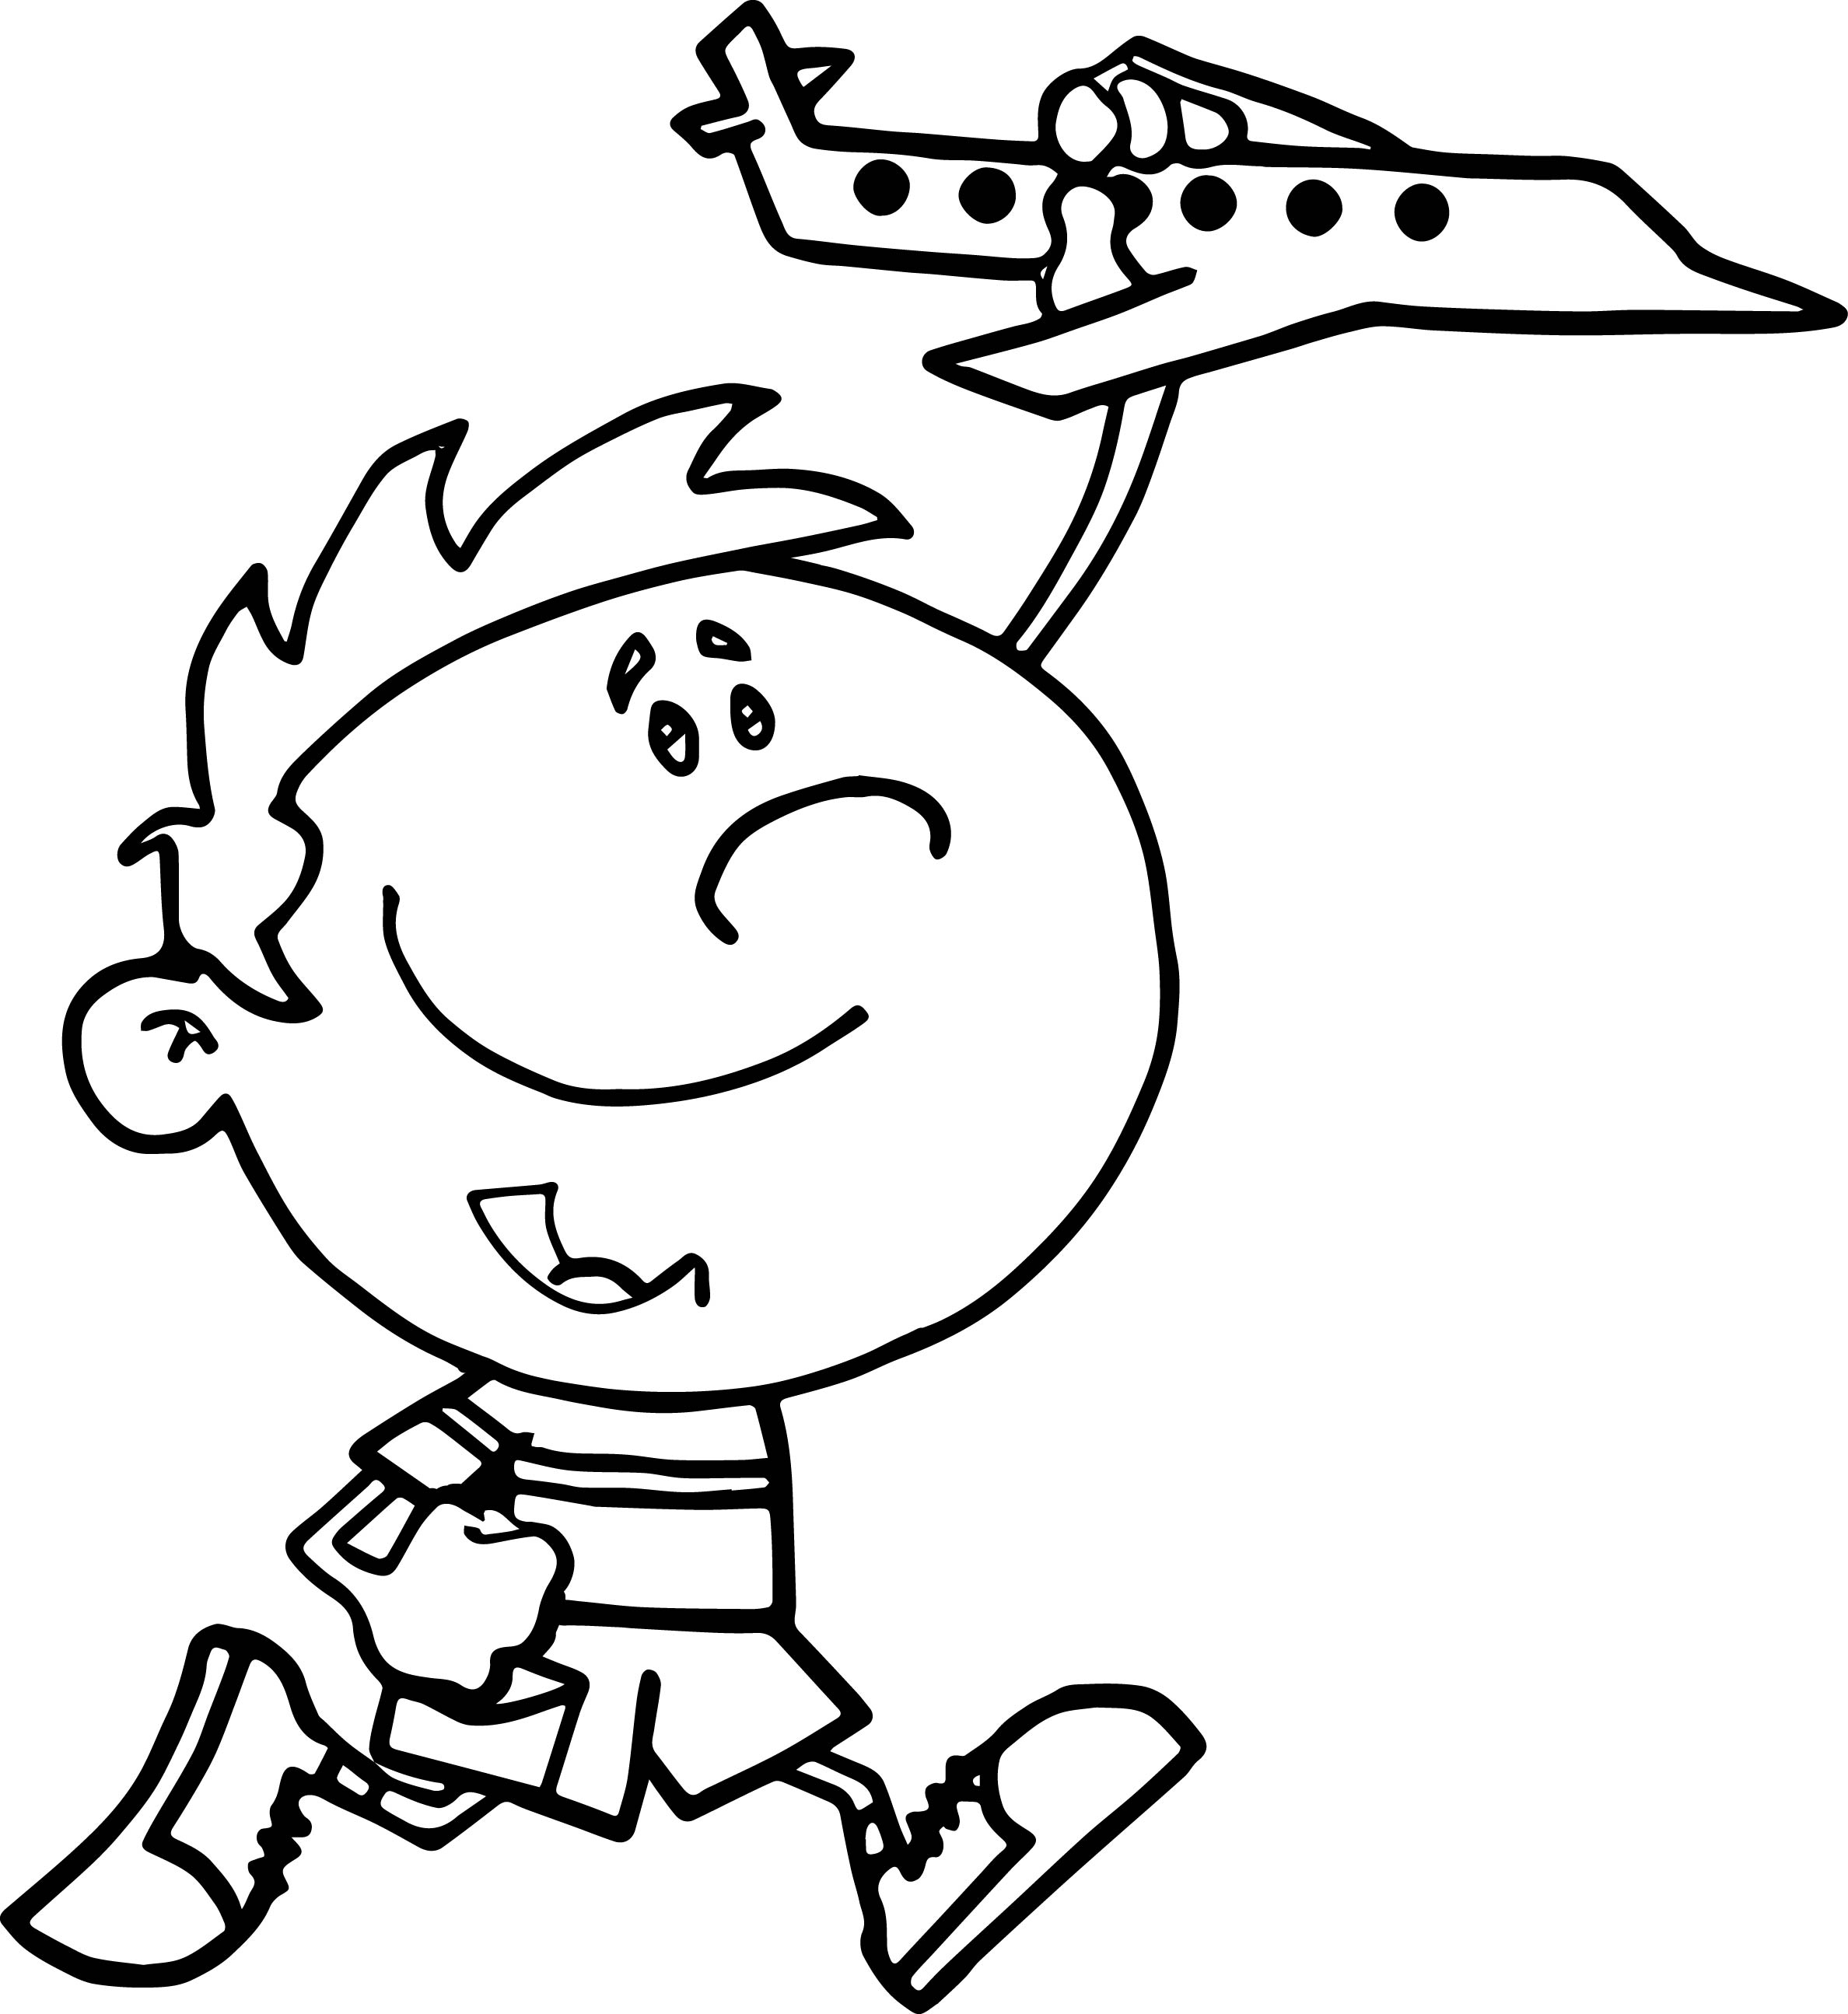 2376x2590 Coloring Pages Boys Coloring Pages Of Airplanes Coloring Pages